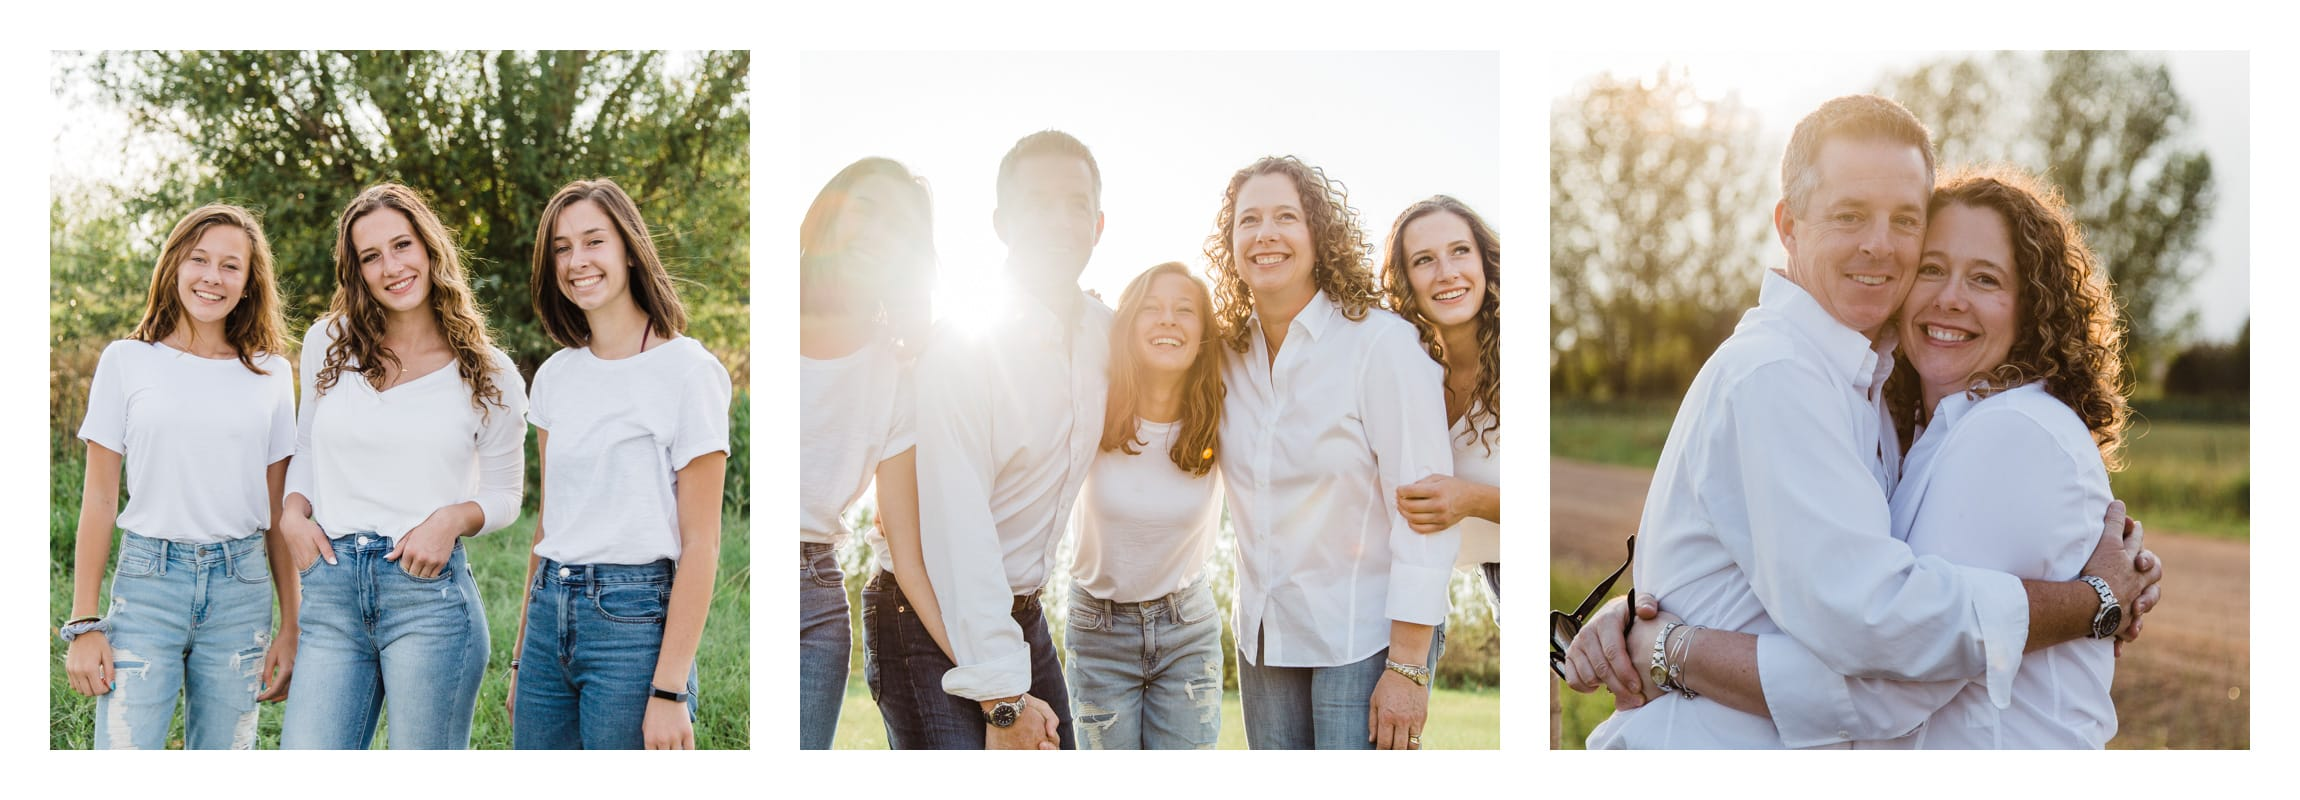 Photos of the Davia family from their family portrait shoot in Erie, Colorado.